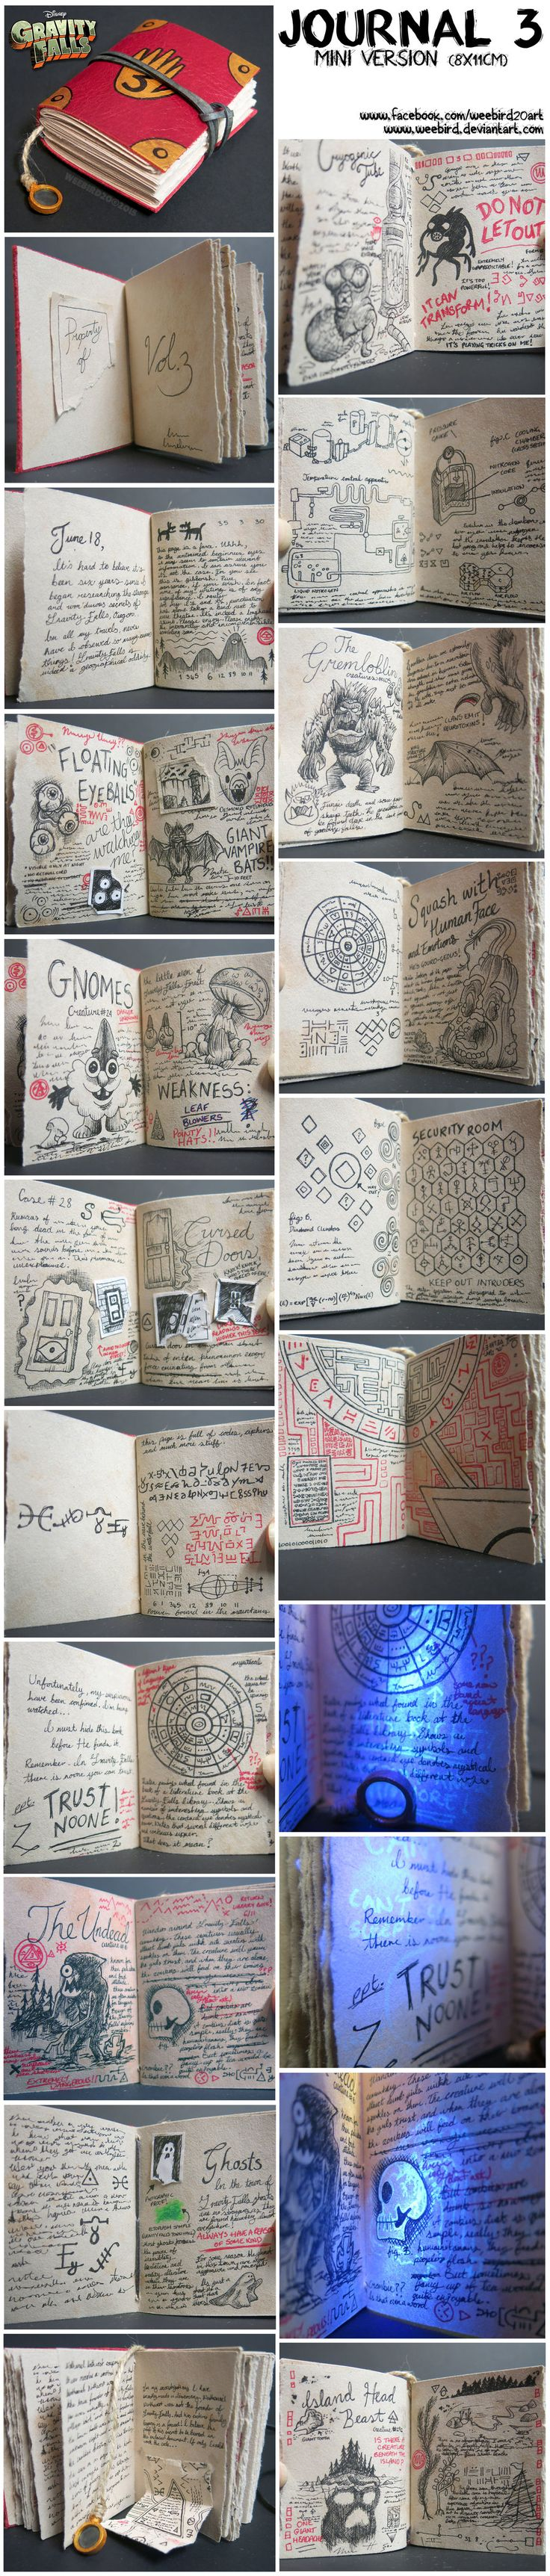 Gravity Falls Journal 3 by weebird>> I WANT ONE OMGAWD!!!                                                                                                                                                                                 Más